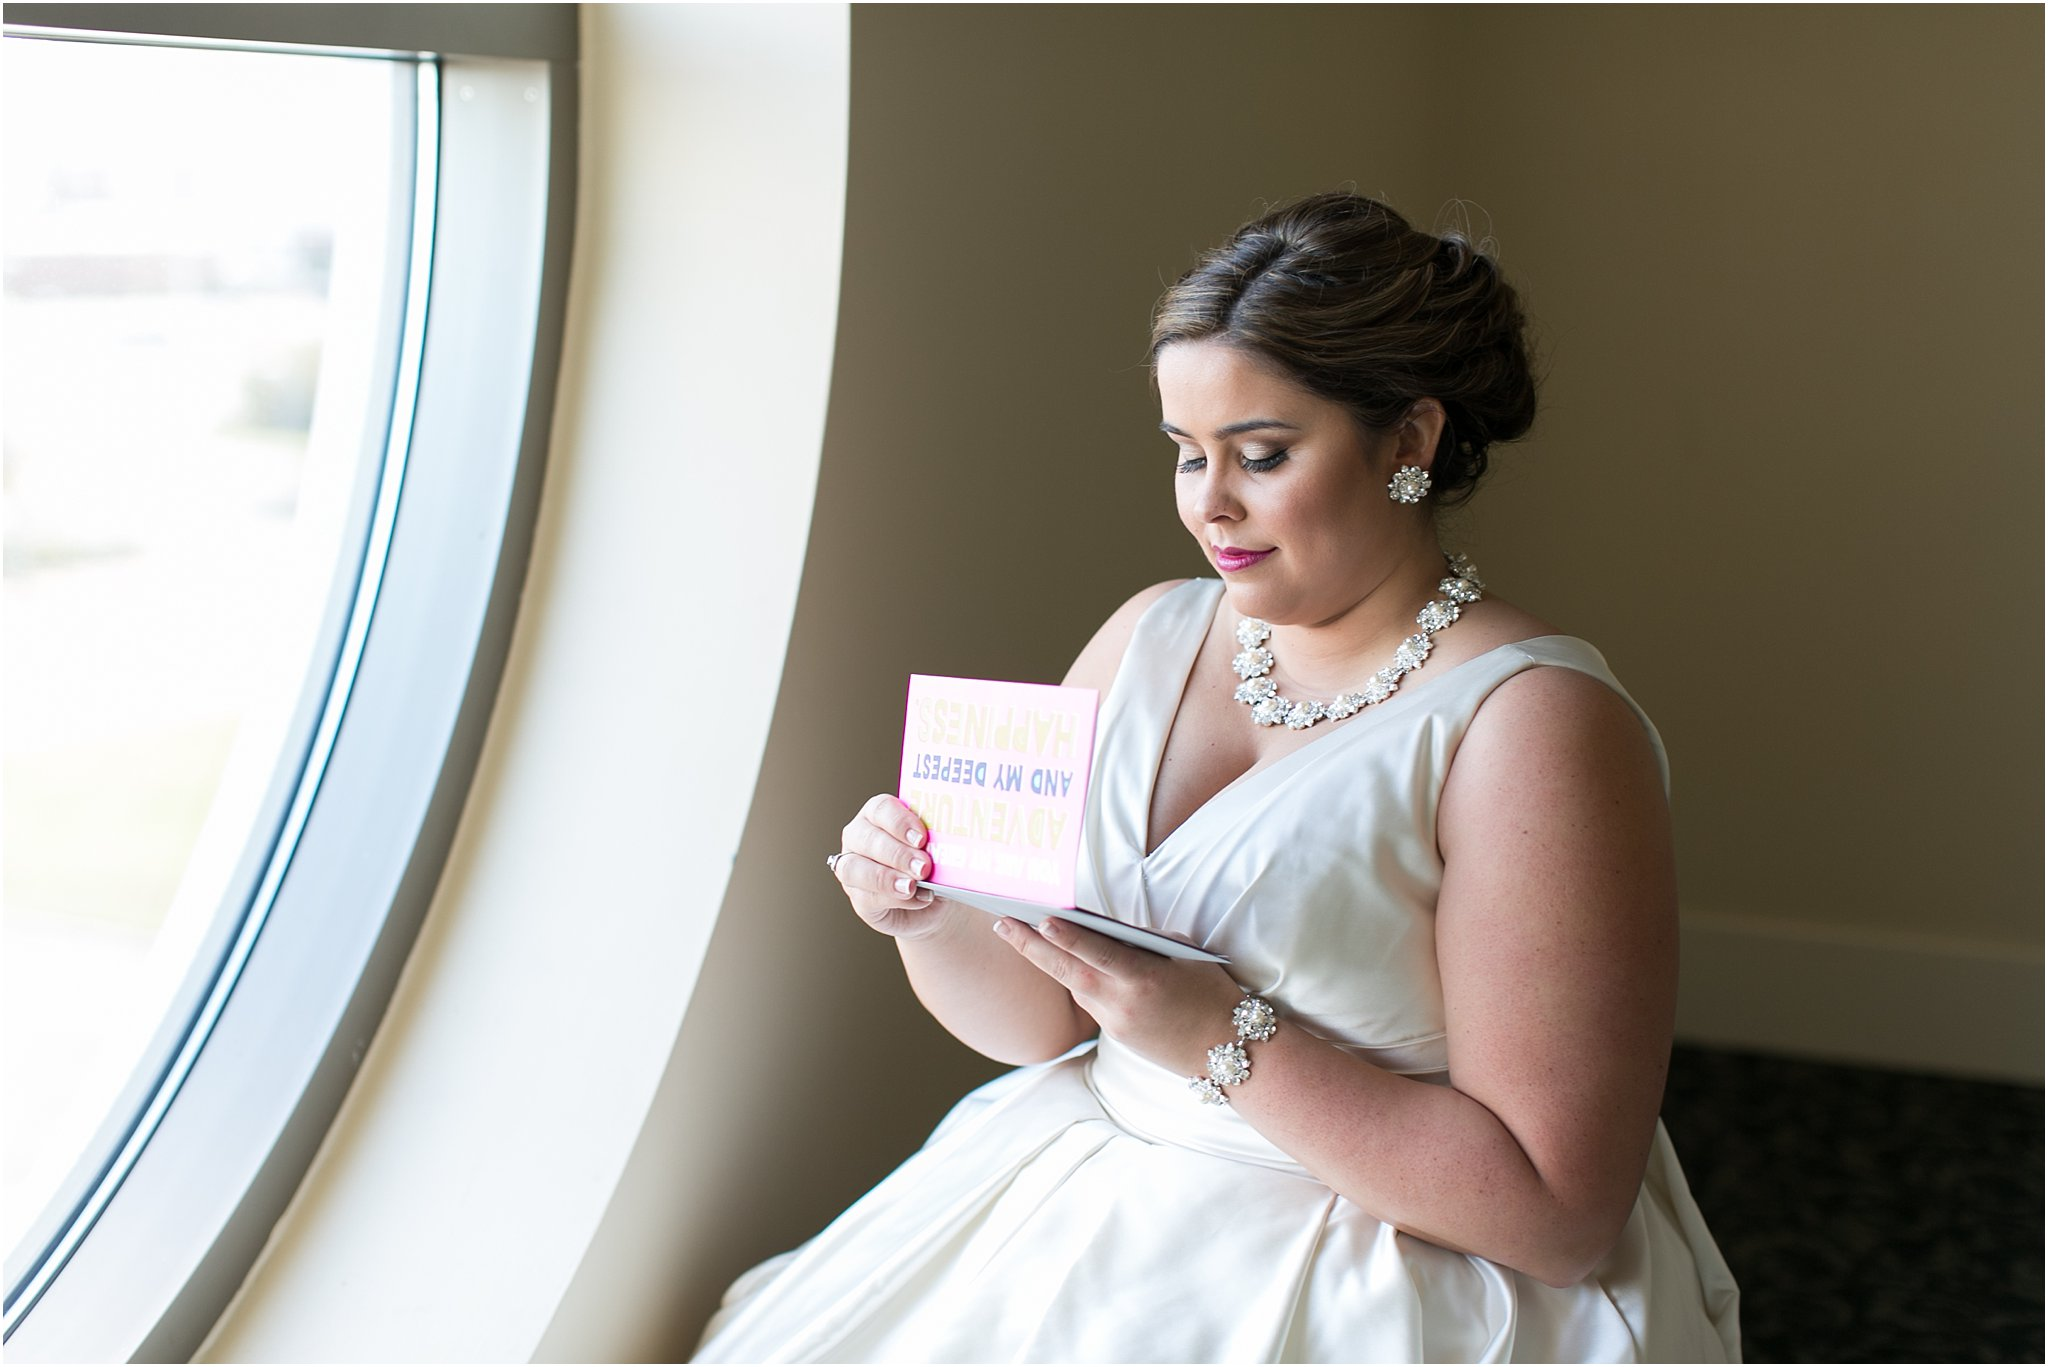 va_jessica_ryan_photography_virginia_wedding_norfolk_harrison_opera_house_norfolk_arts_district_portraits_3769